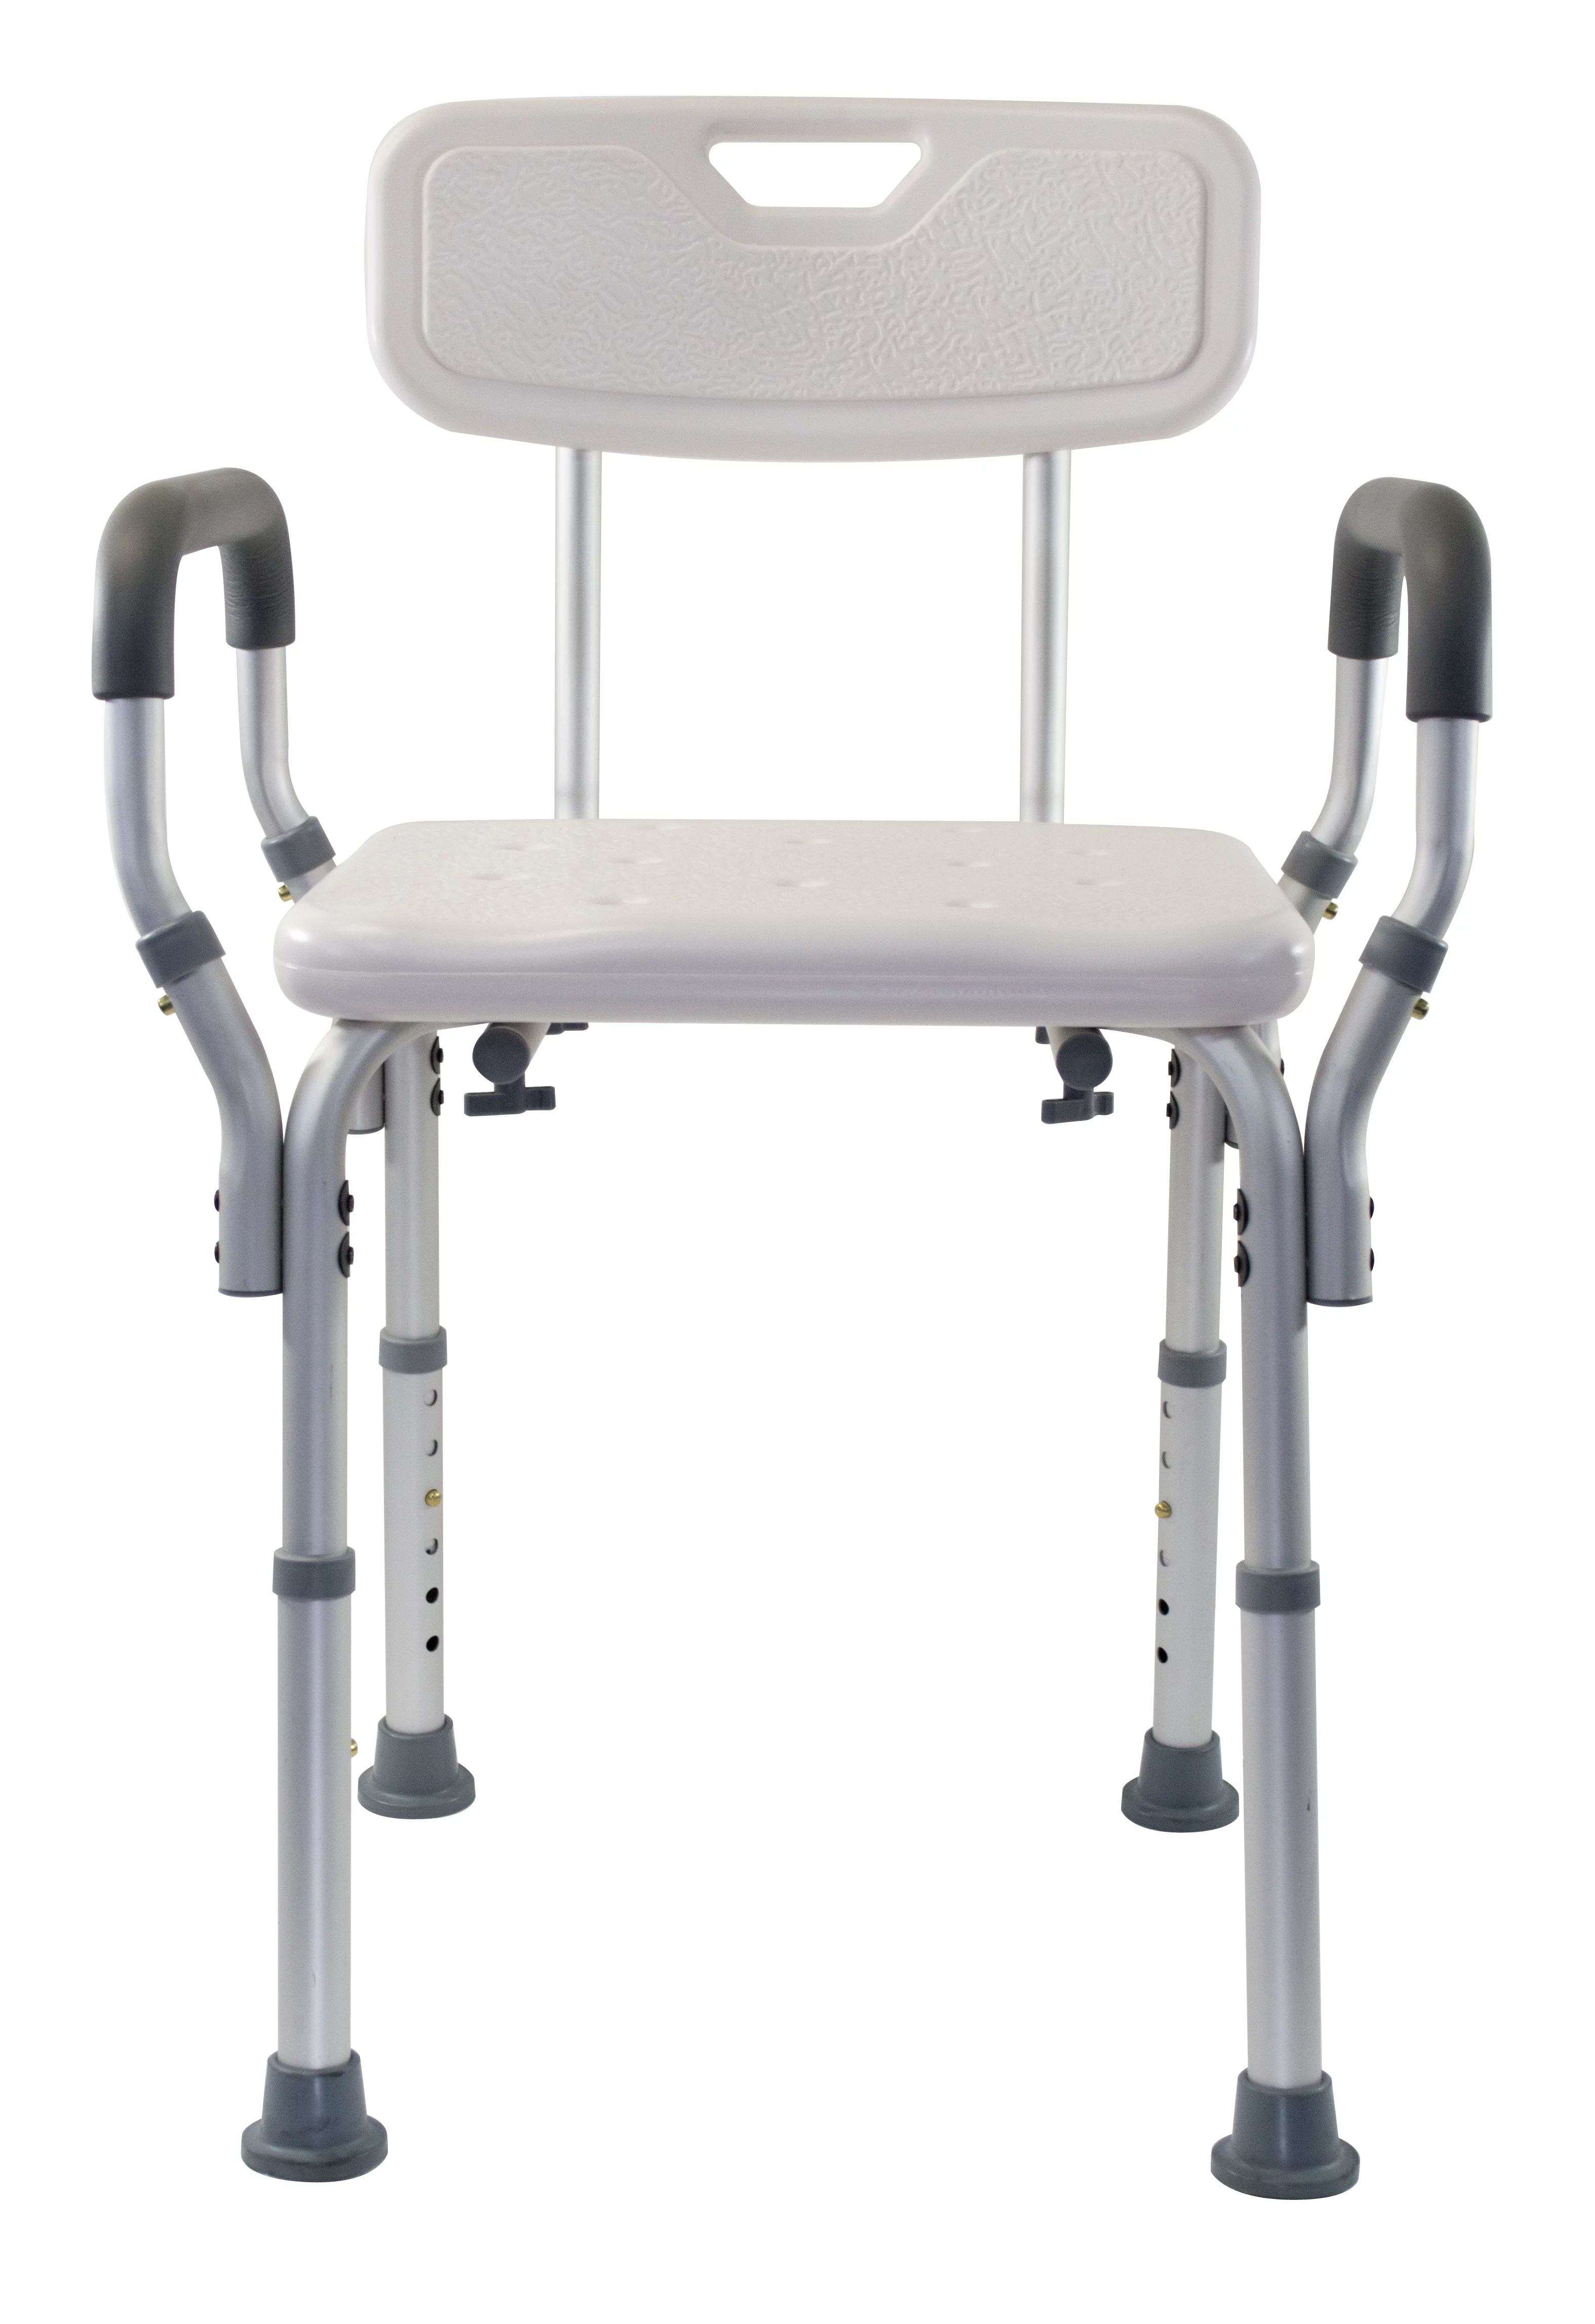 chair with arms high back club ottoman essential medical supply adjustable molded shower walmart com